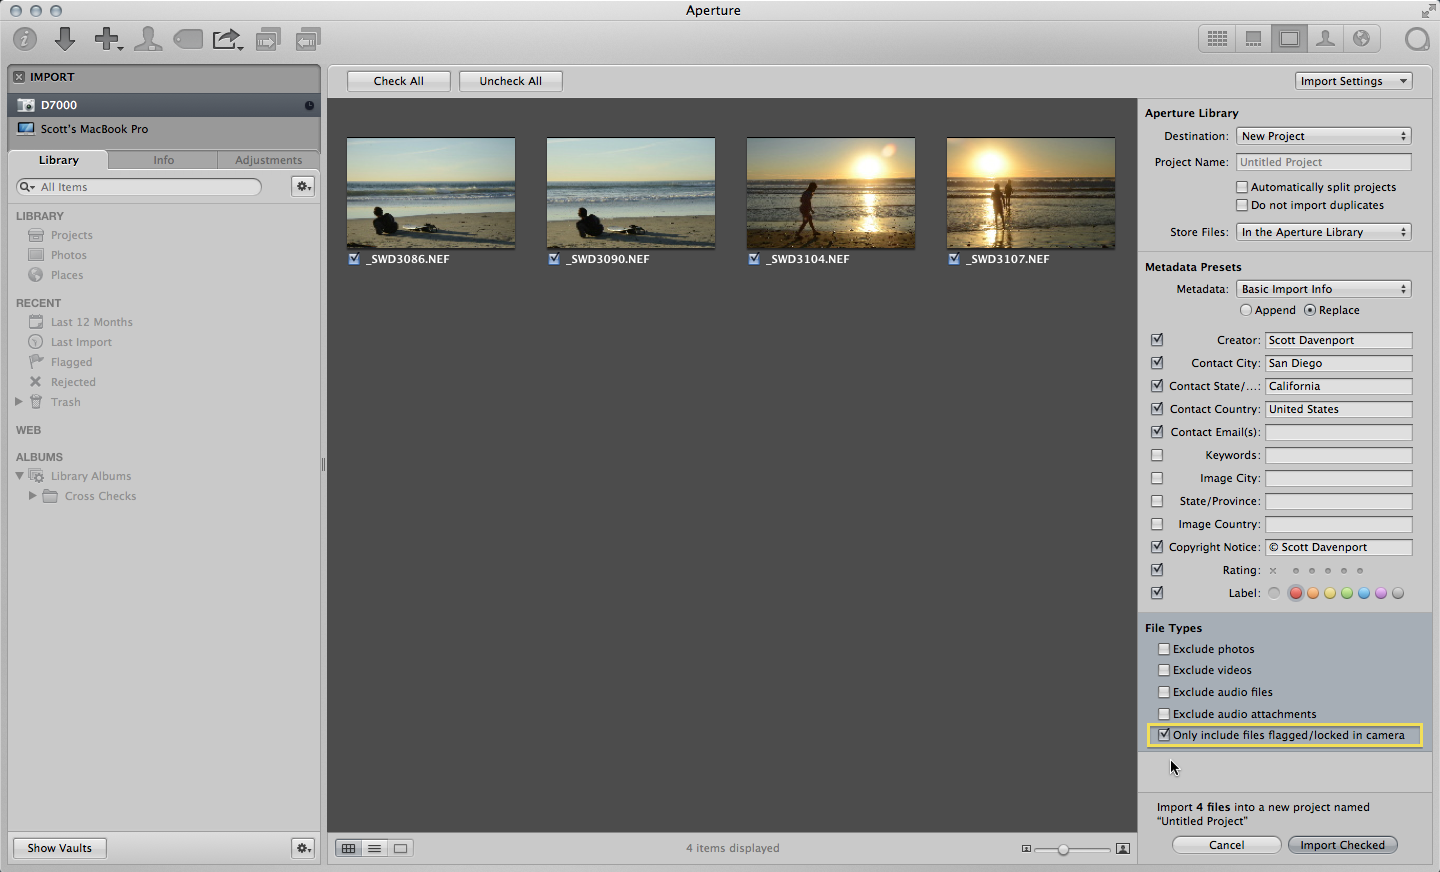 The File Types pane has many options to hone in on exactly the photos you want to import